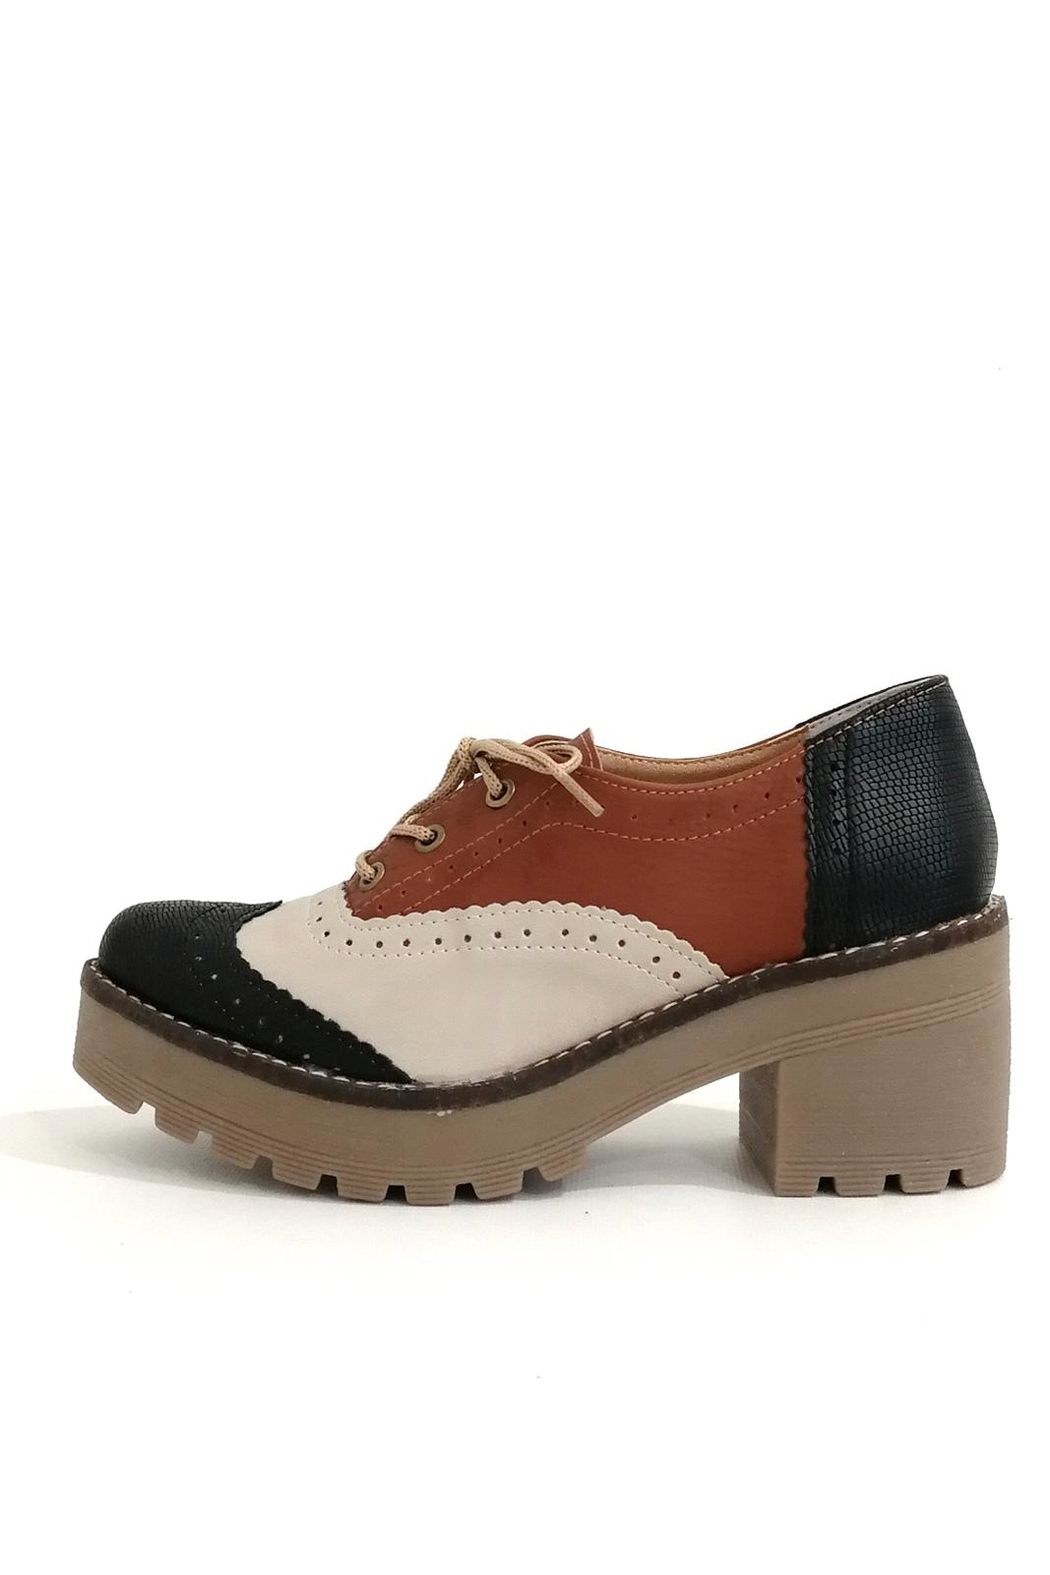 MIYE COLLAZZO Hope Shoes - Front Full Image